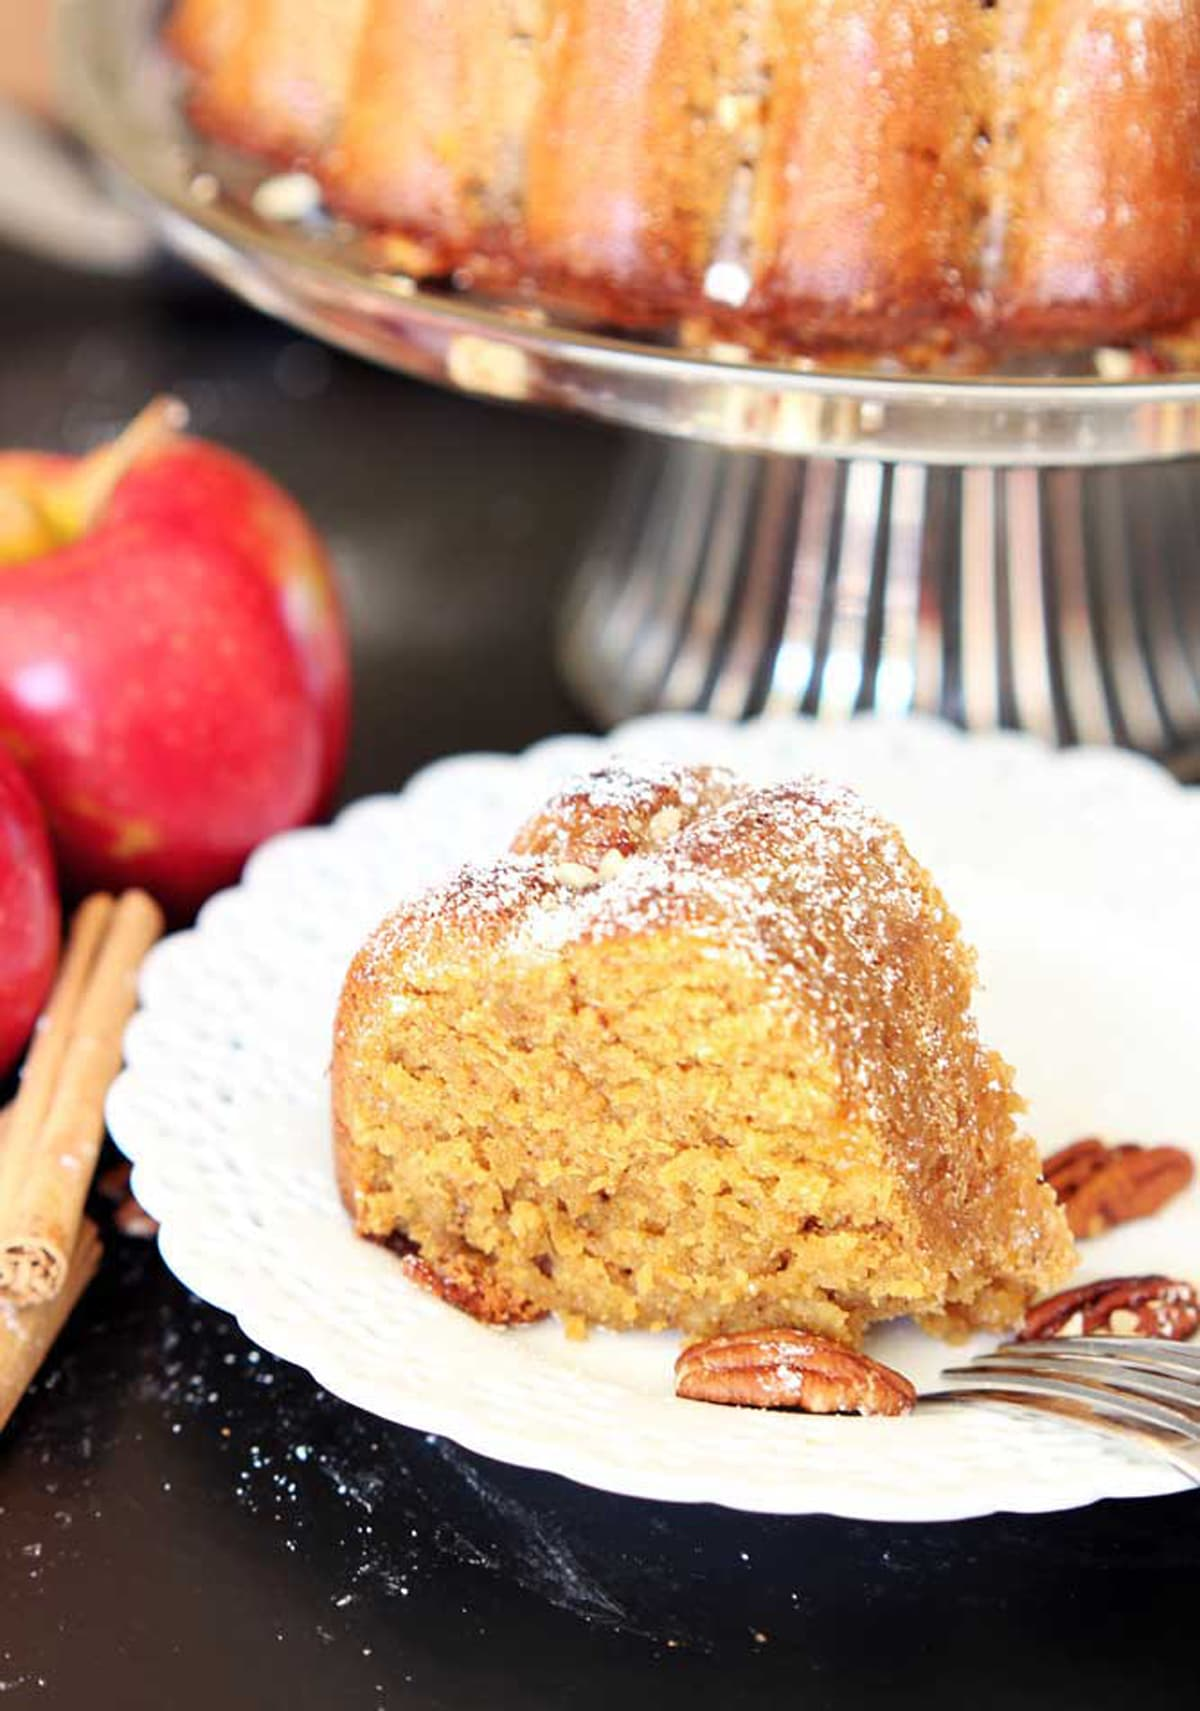 A piece of sliced apple pumpkin bundt cake sitting on a white lace plate, 2 red apples with cinnamon stick and pecans on a black table.